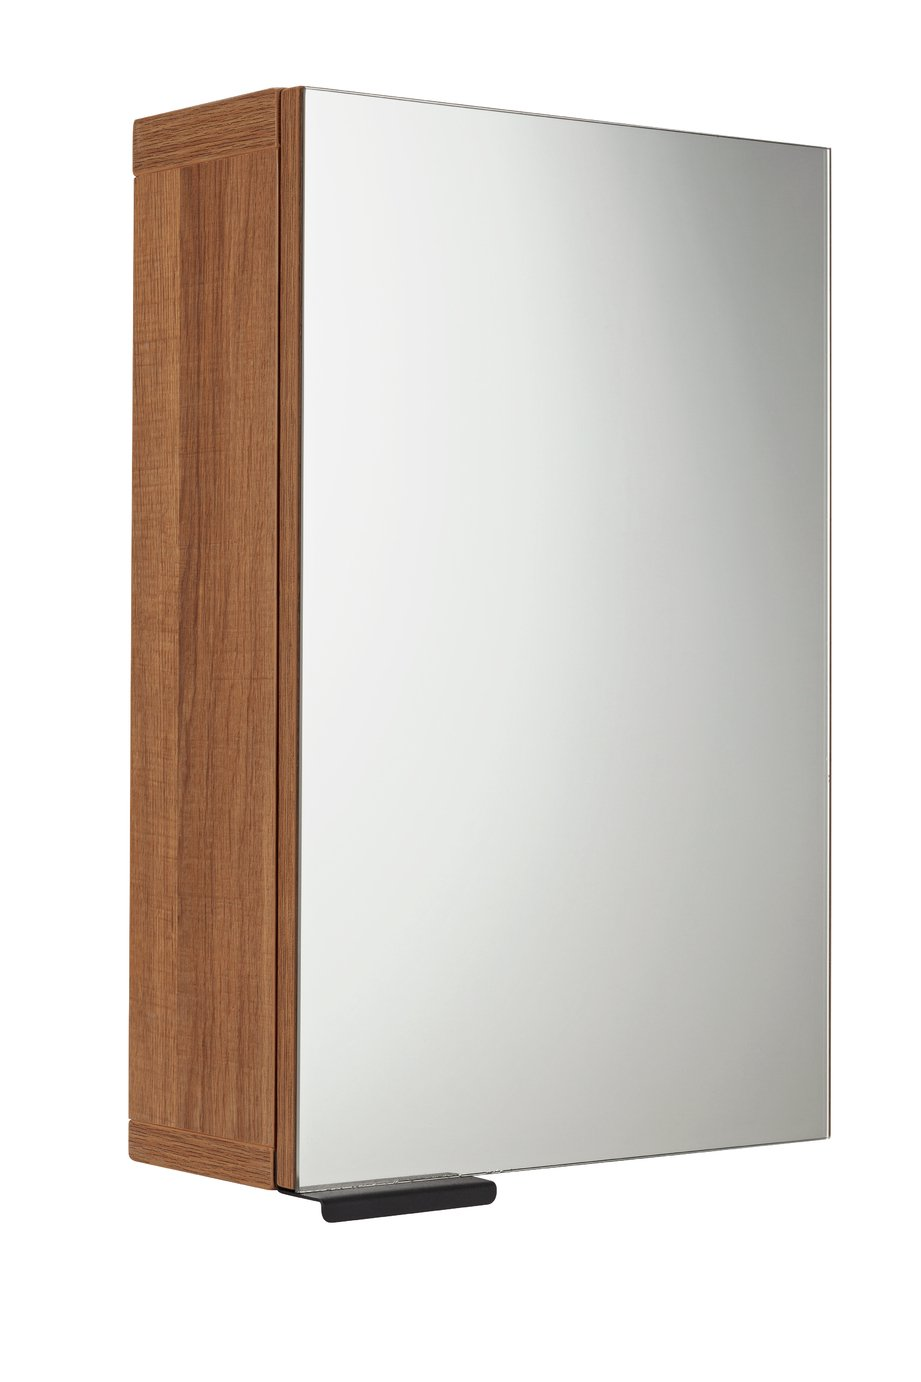 Argos Home Nomad Single Mirrored Wall Cabinet